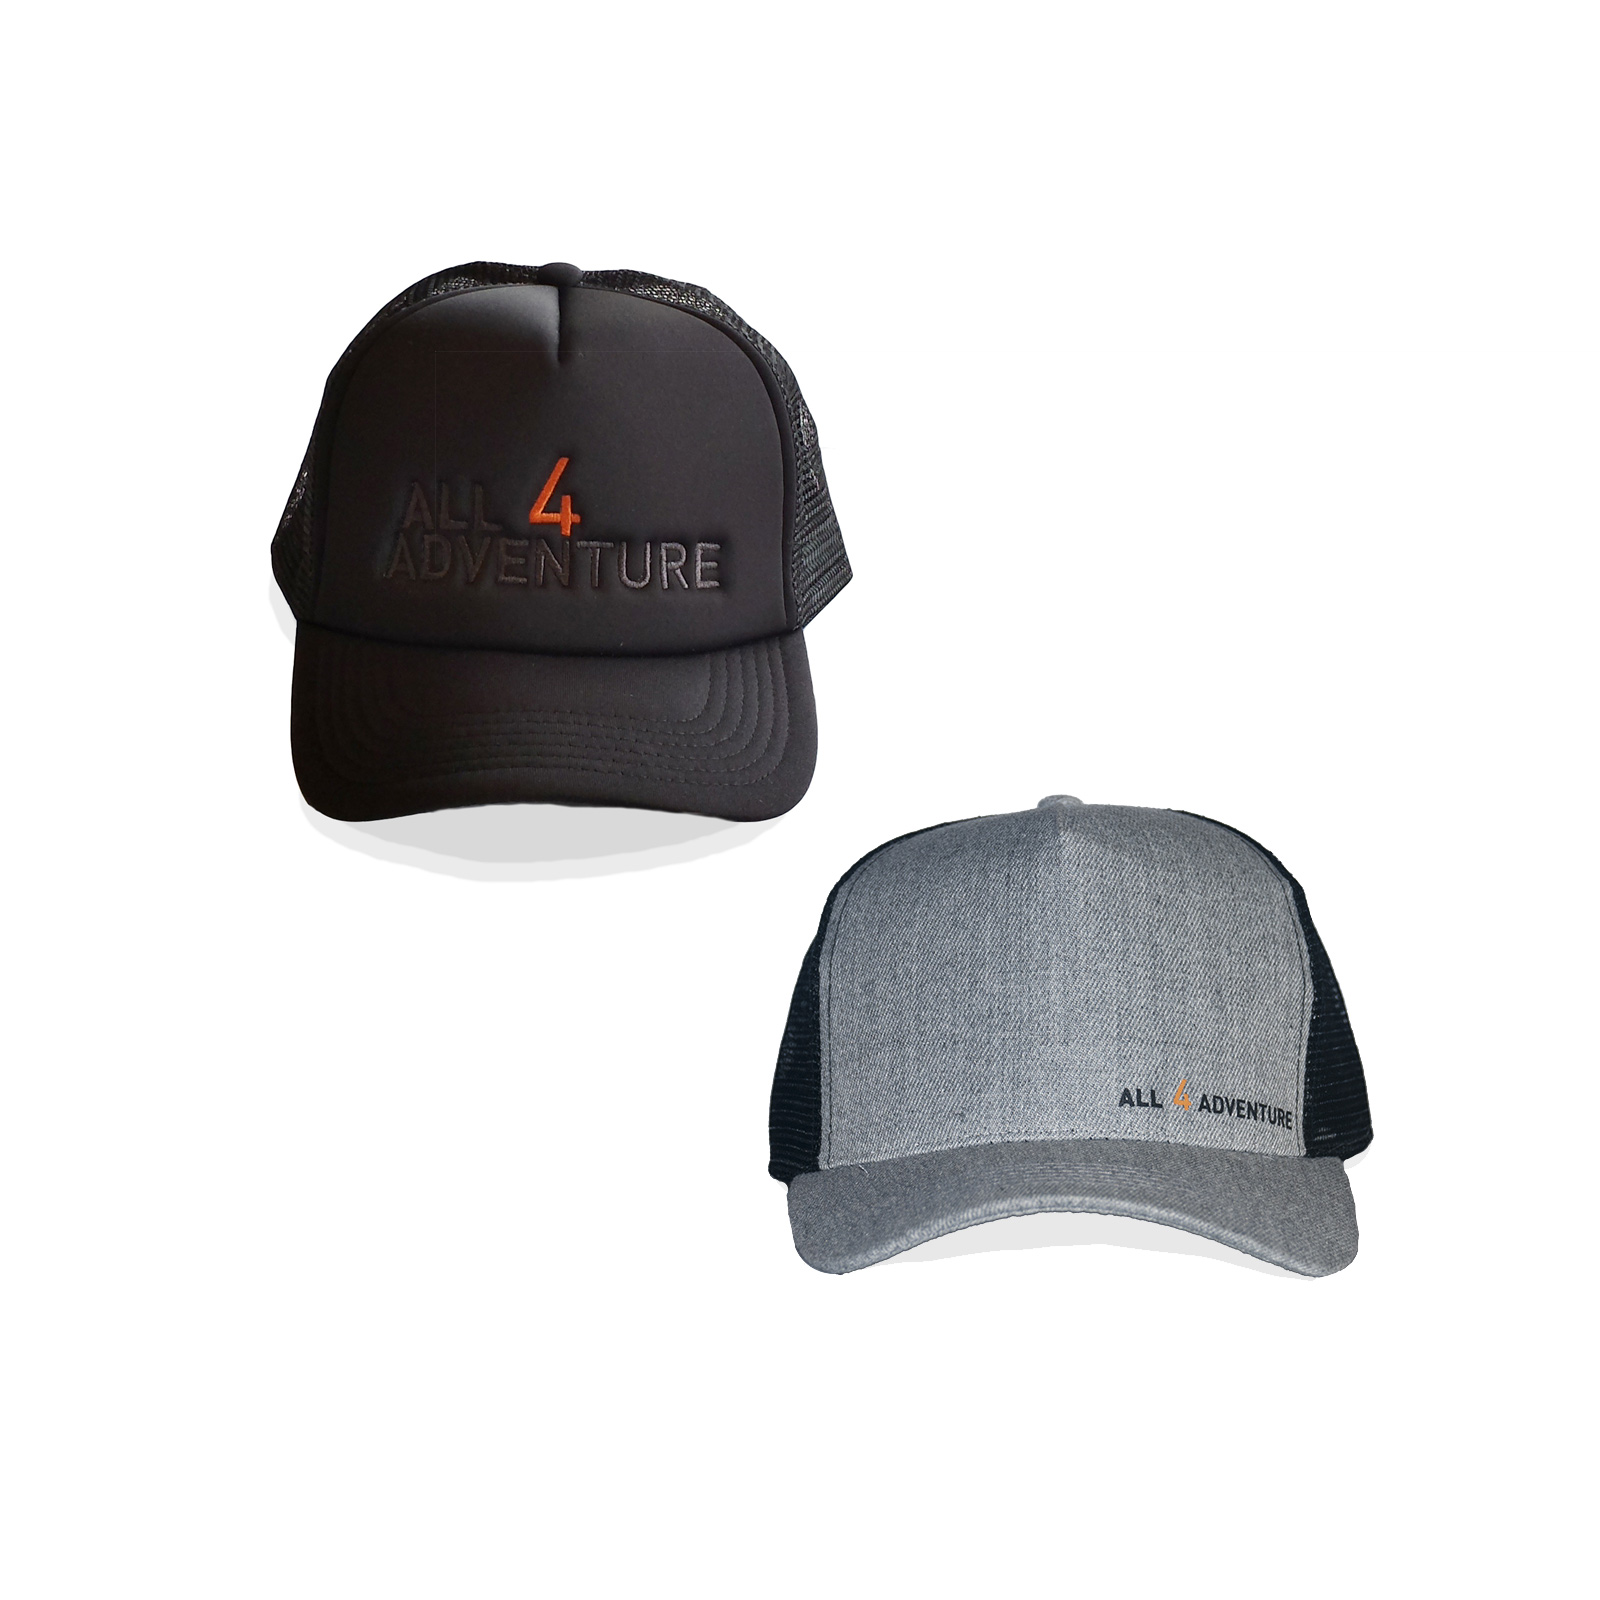 Buy 1 cap, get 2nd half off